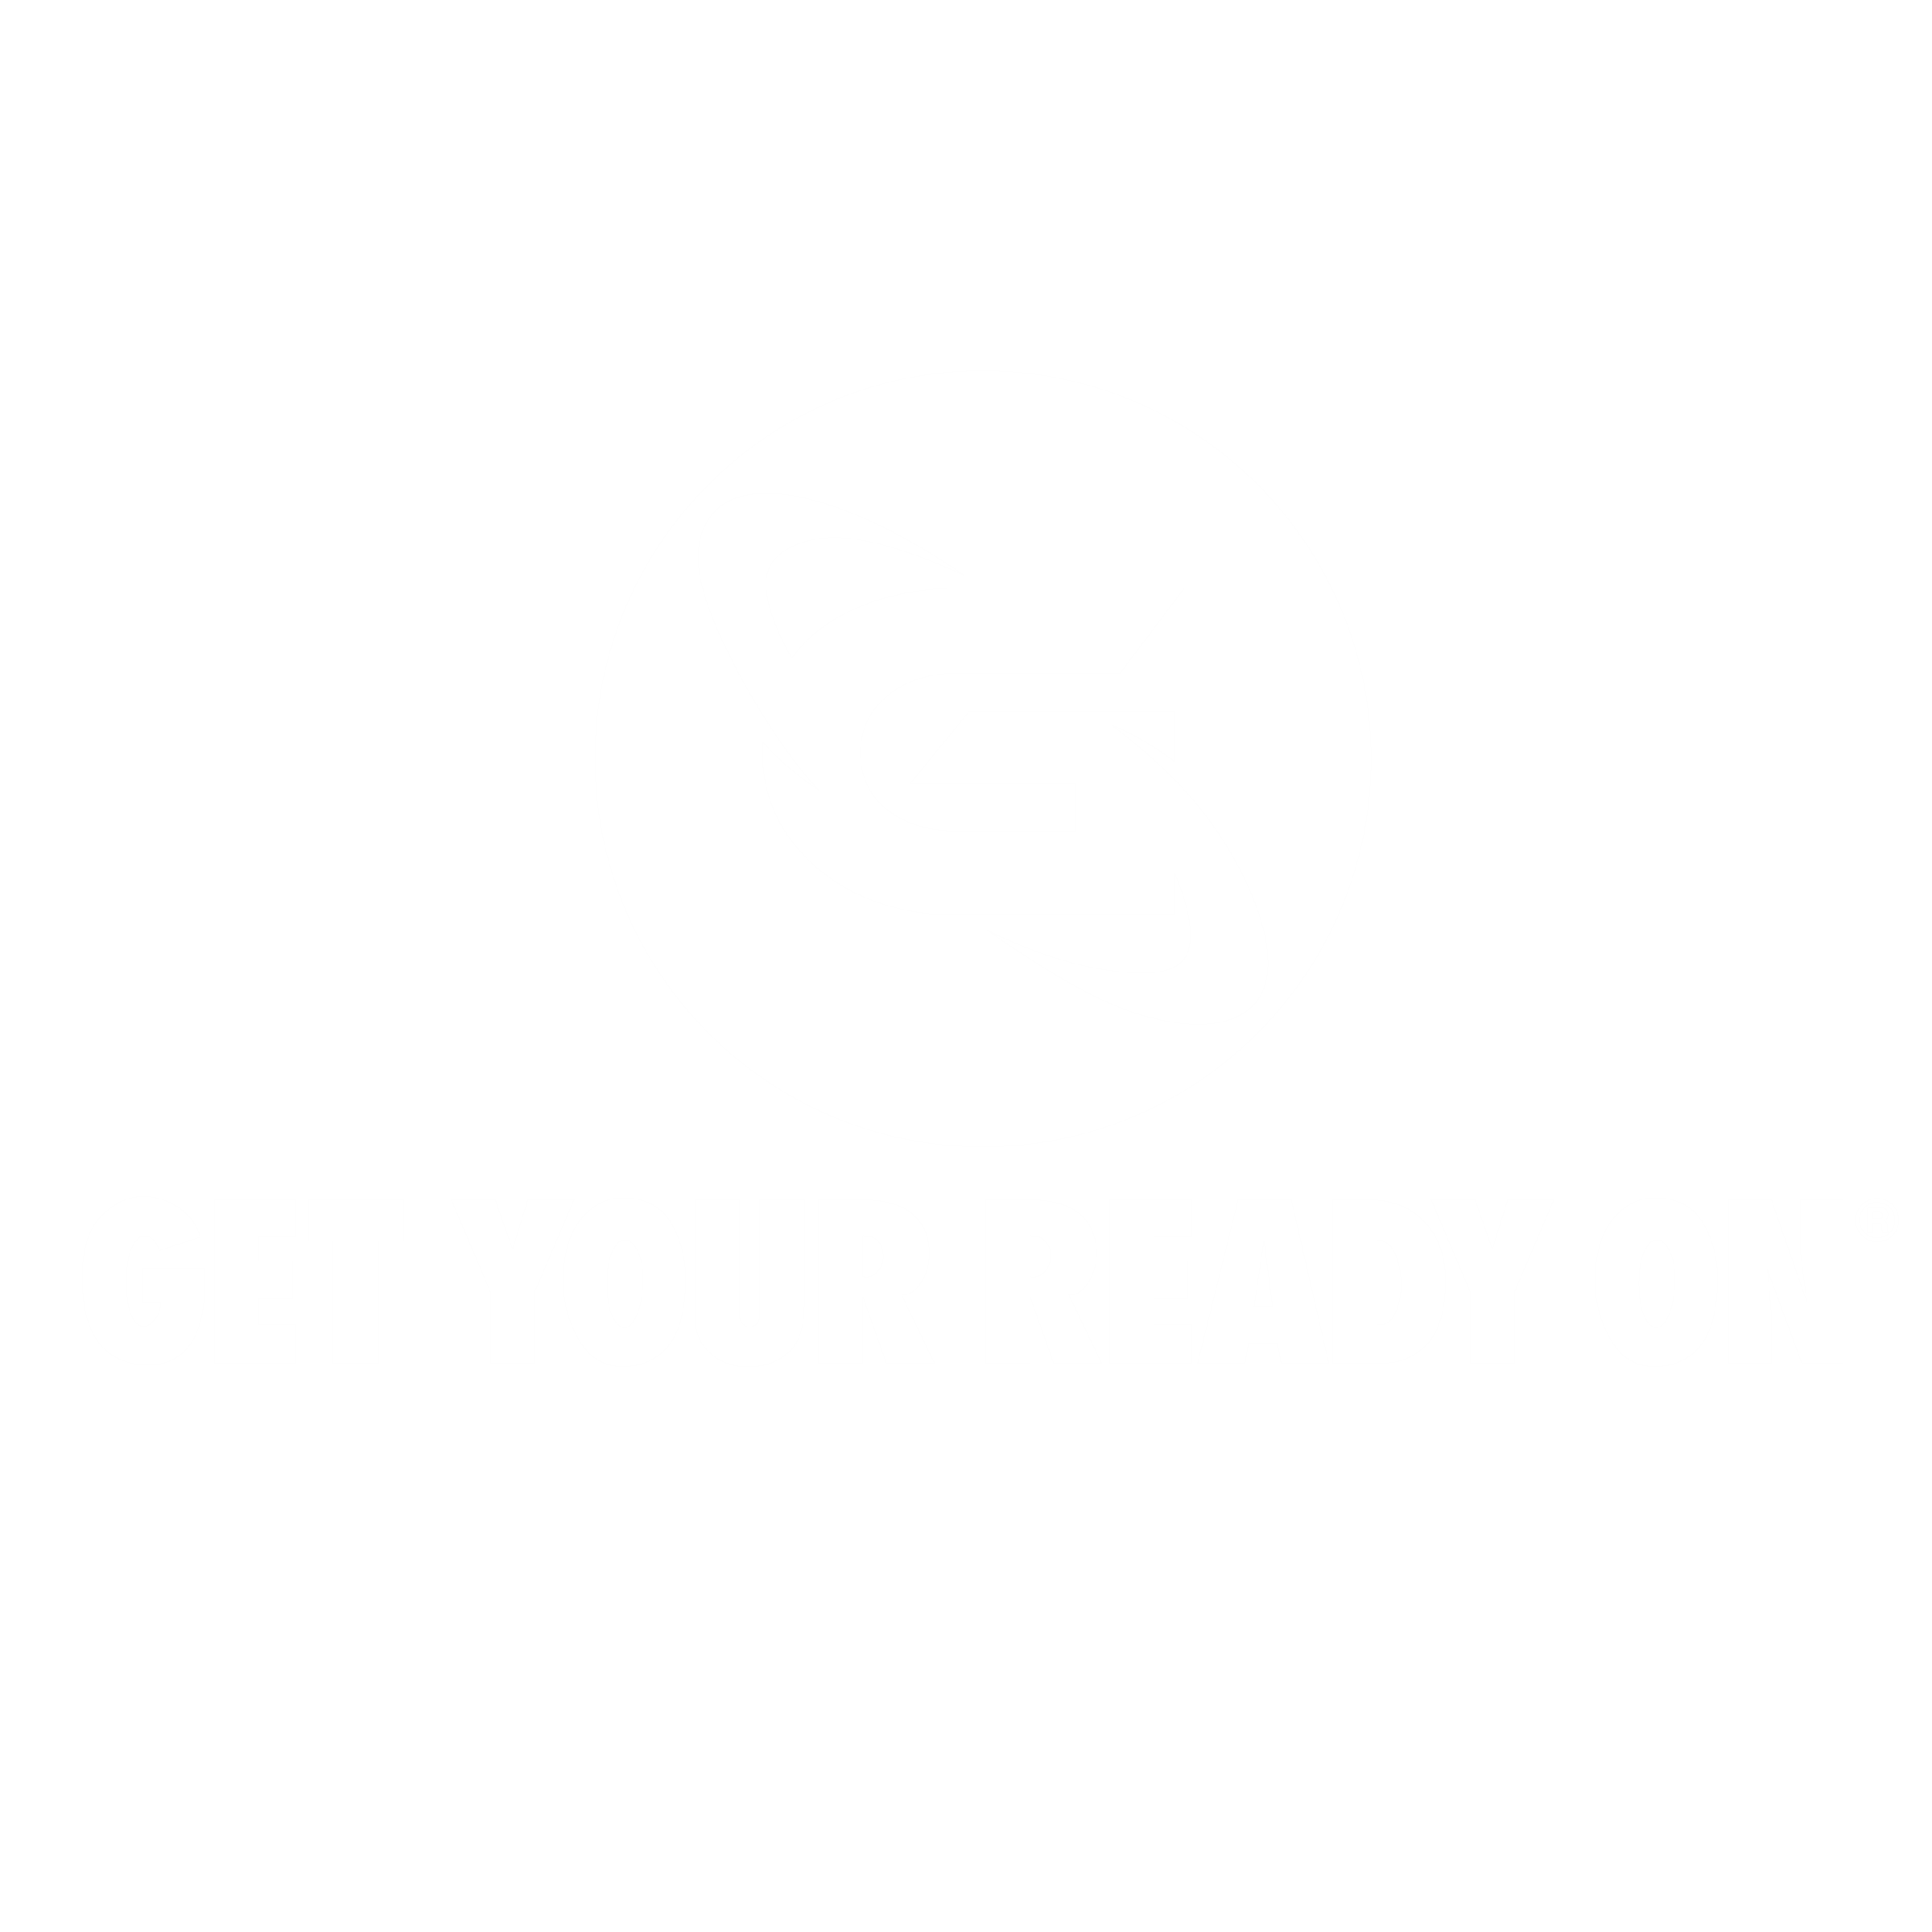 G icon in a black circle with Get Your Ready On underneath - Transparent Background